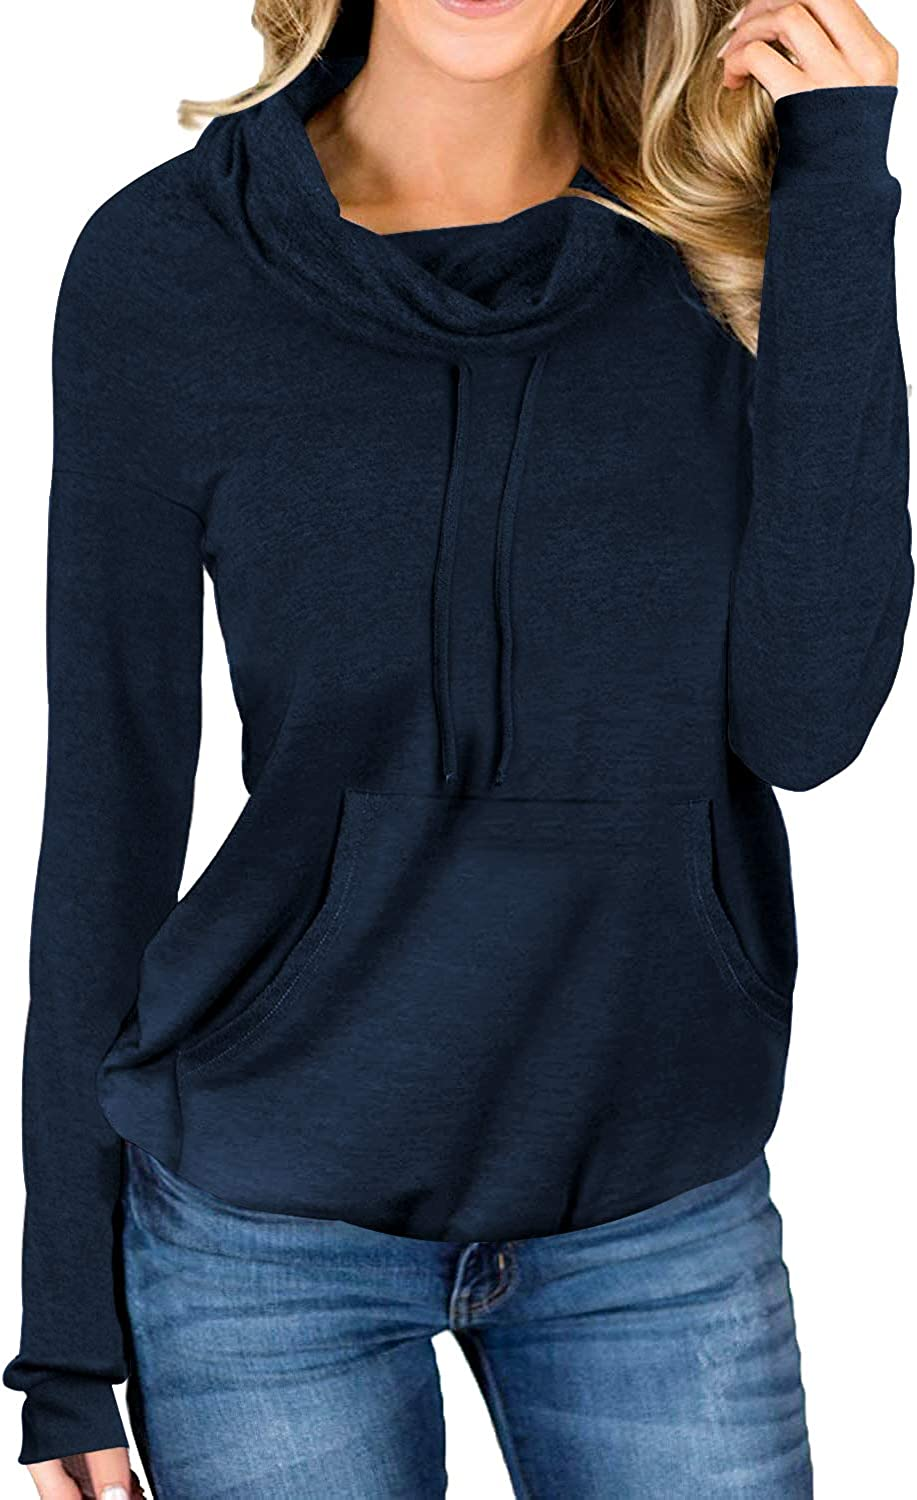 Davenil Women's Sweatshirts with Pocket Cowl Neck Sweaters Long Sleeve Pullover Casual Loose Tops with Drawstring